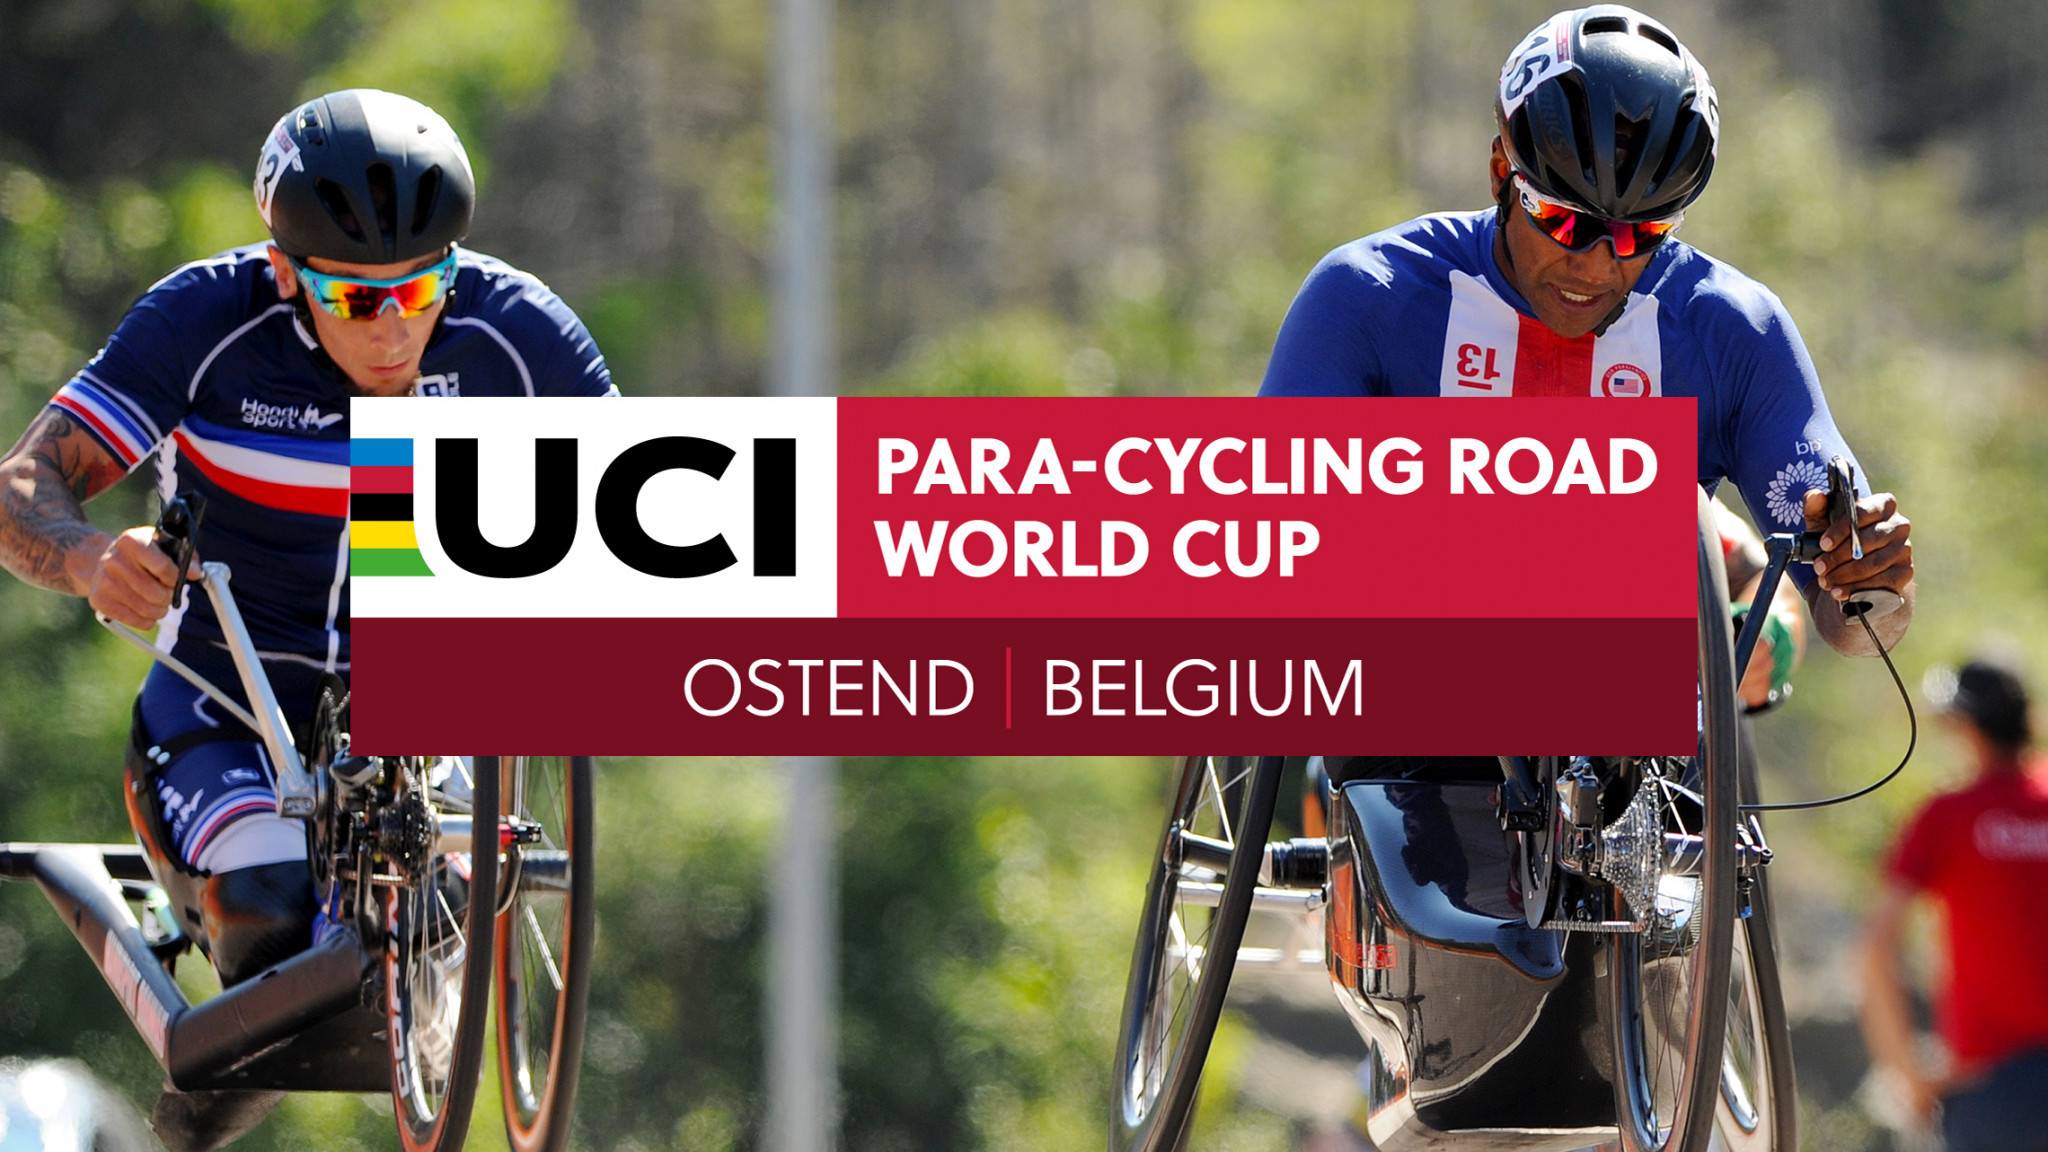 The second day of time trial races were held in Ostend ©UCI